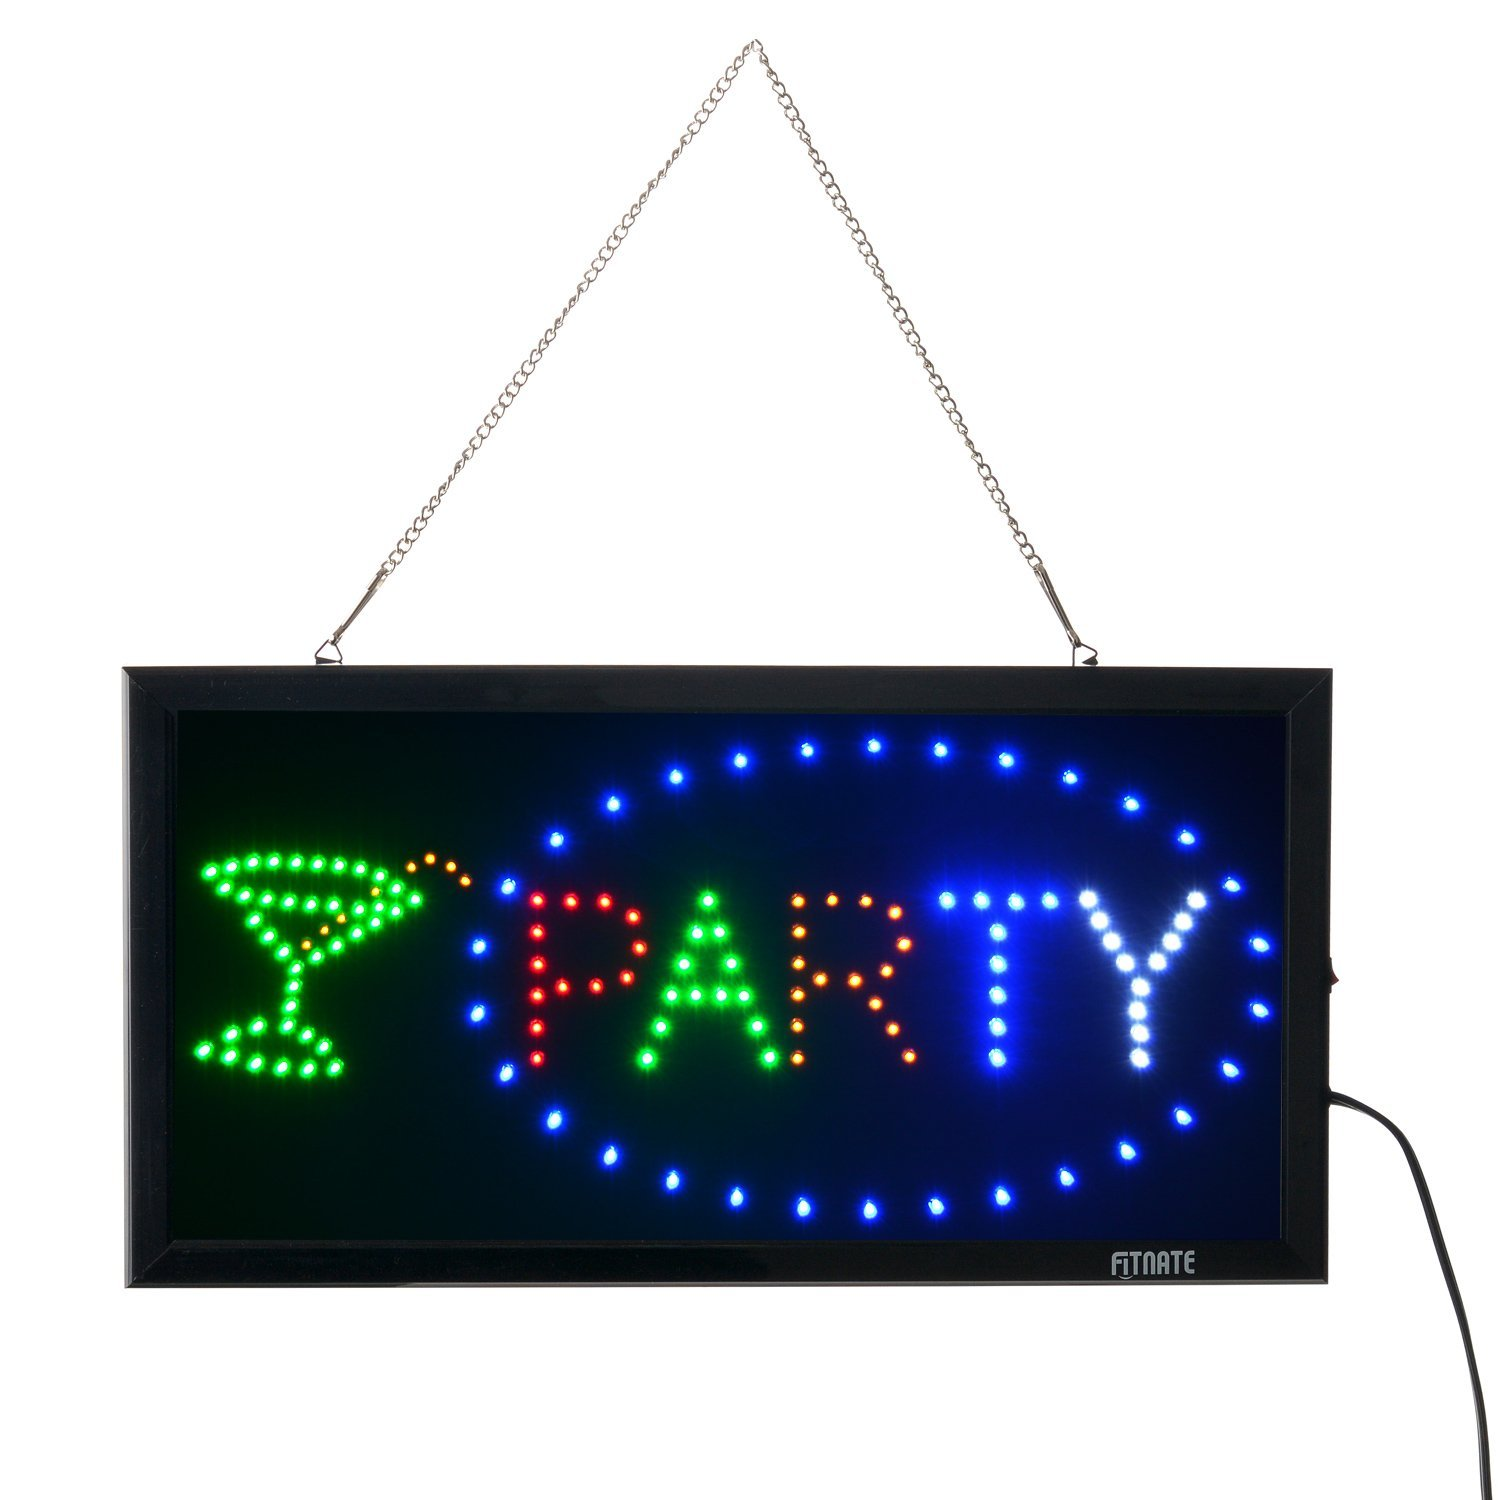 Party Sign, Fitnate LED Neon Party Sign Bright Advertising Board Electric Lighted Display Sign - Two Modes Flashing & Steady Light for Wedding, Holiday, Family Reunion, Business, Window, Bar, Hotel